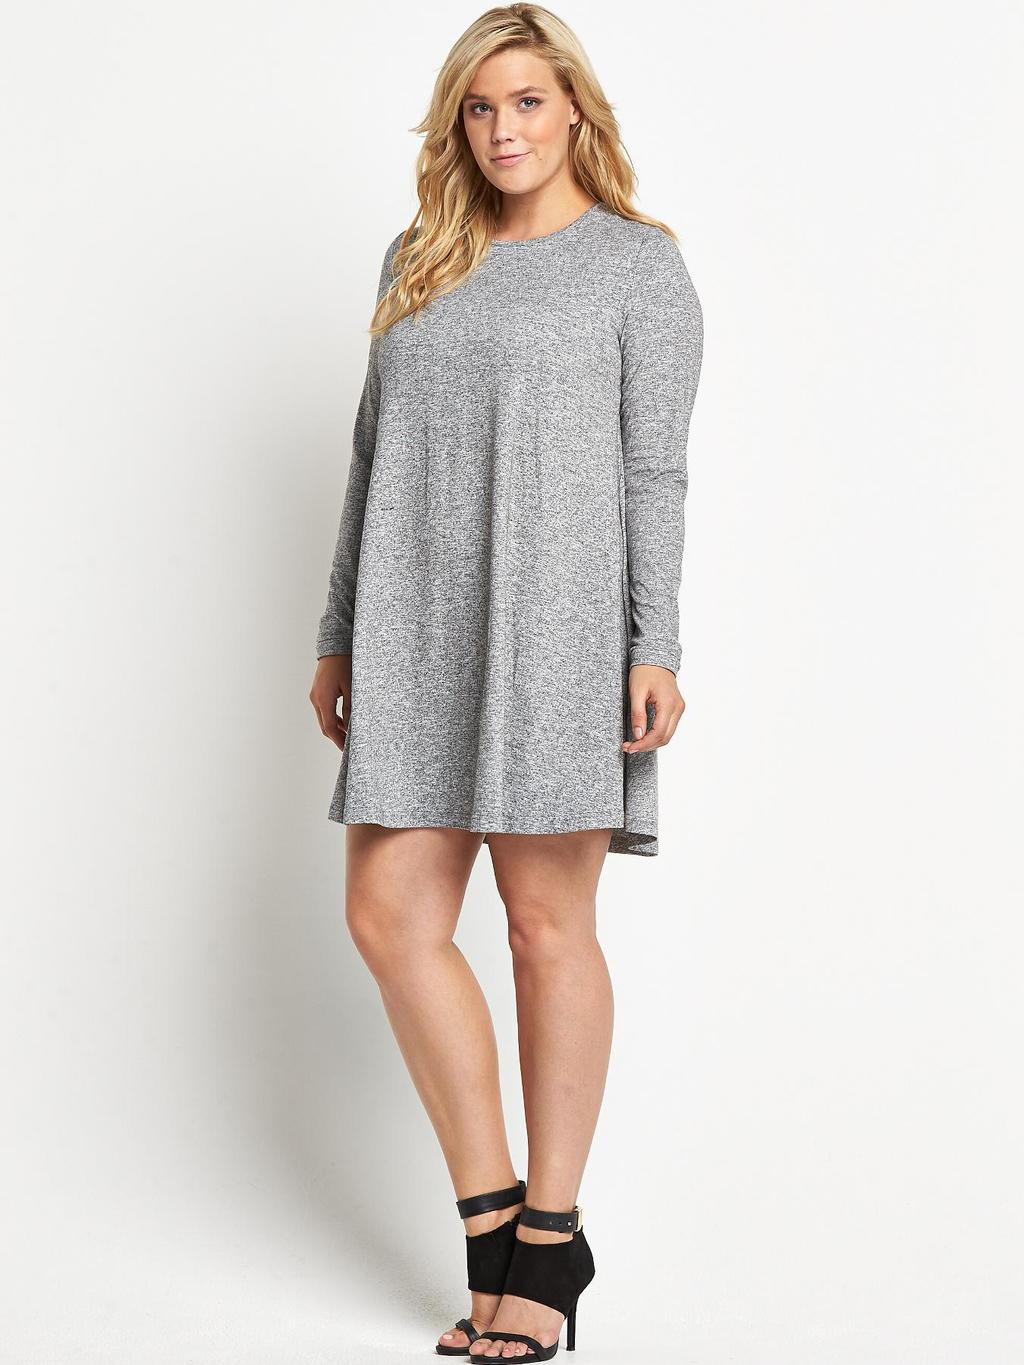 Grey Marl Swing Dress (Available In Sizes 16 28), Grey - style: jumper dress; neckline: round neck; fit: loose; predominant colour: mid grey; occasions: casual, evening, creative work; length: just above the knee; fibres: polyester/polyamide - mix; sleeve length: long sleeve; sleeve style: standard; texture group: jersey - stretchy/drapey; pattern: marl; season: a/w 2014